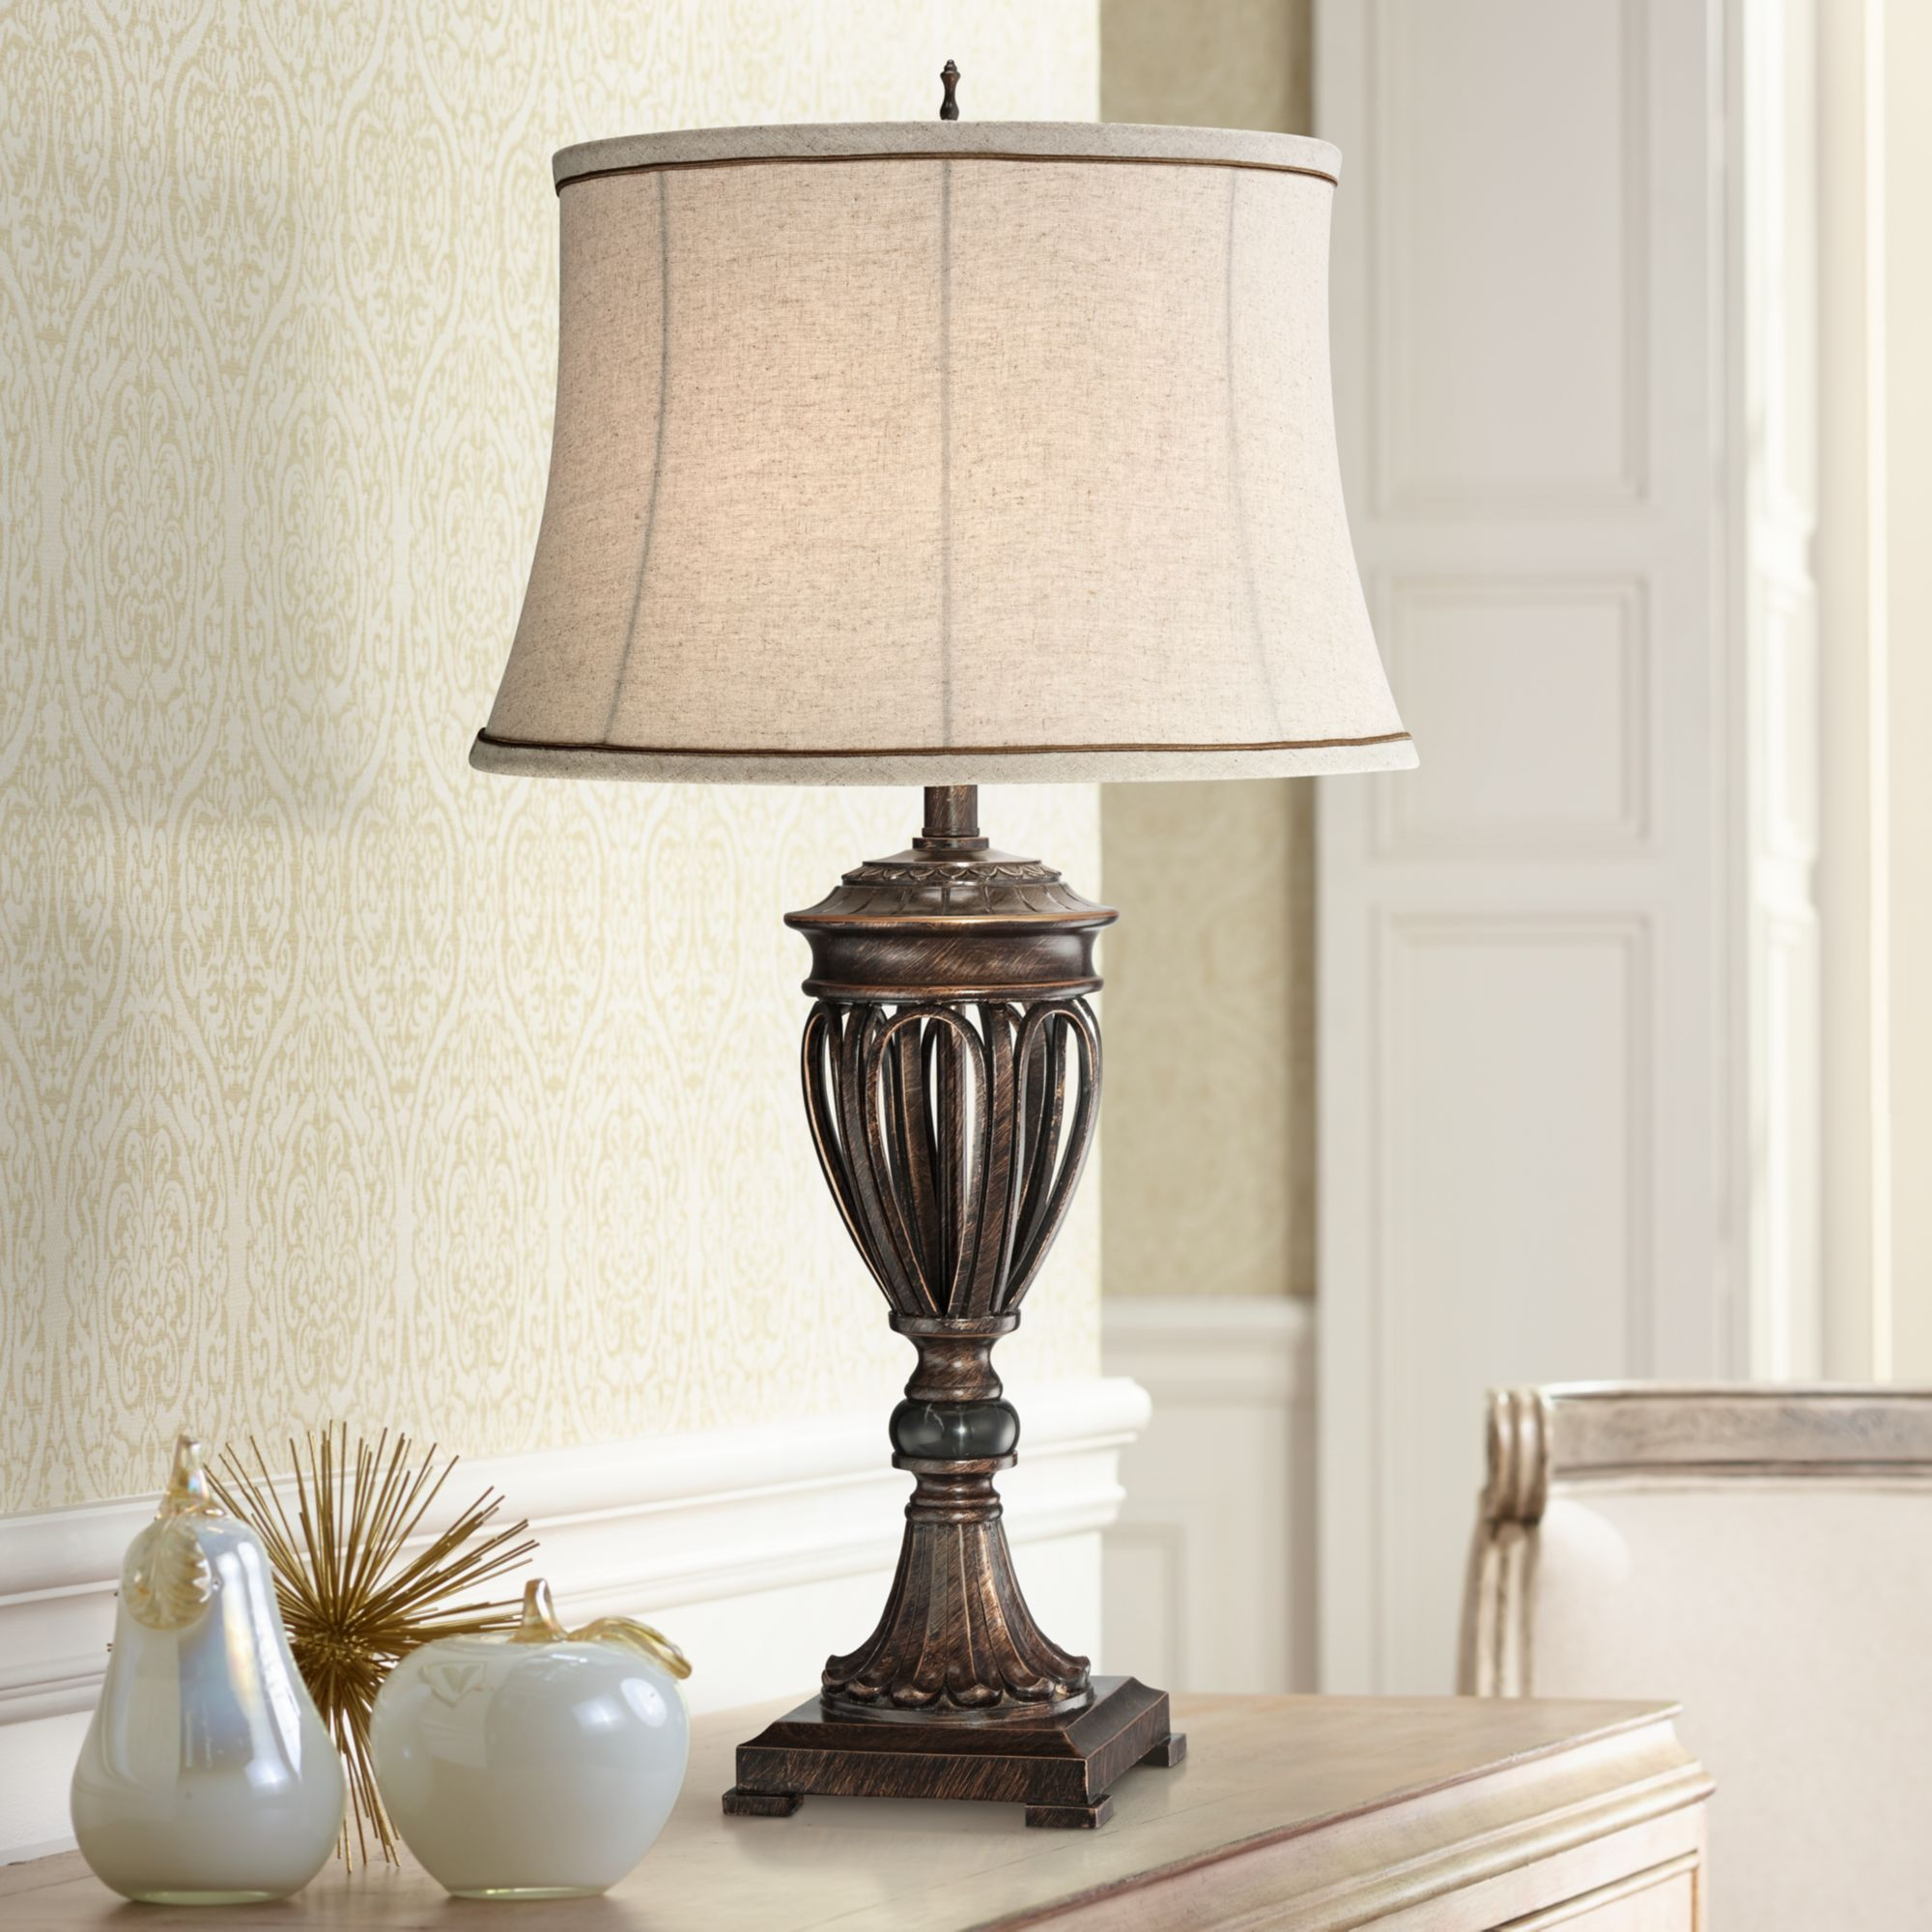 Regency Hill Traditional Table Lamp Bronze Open Urn Tan Drum Fabric Shade for Living Room Family Bedroom Bedside Nightstand Office